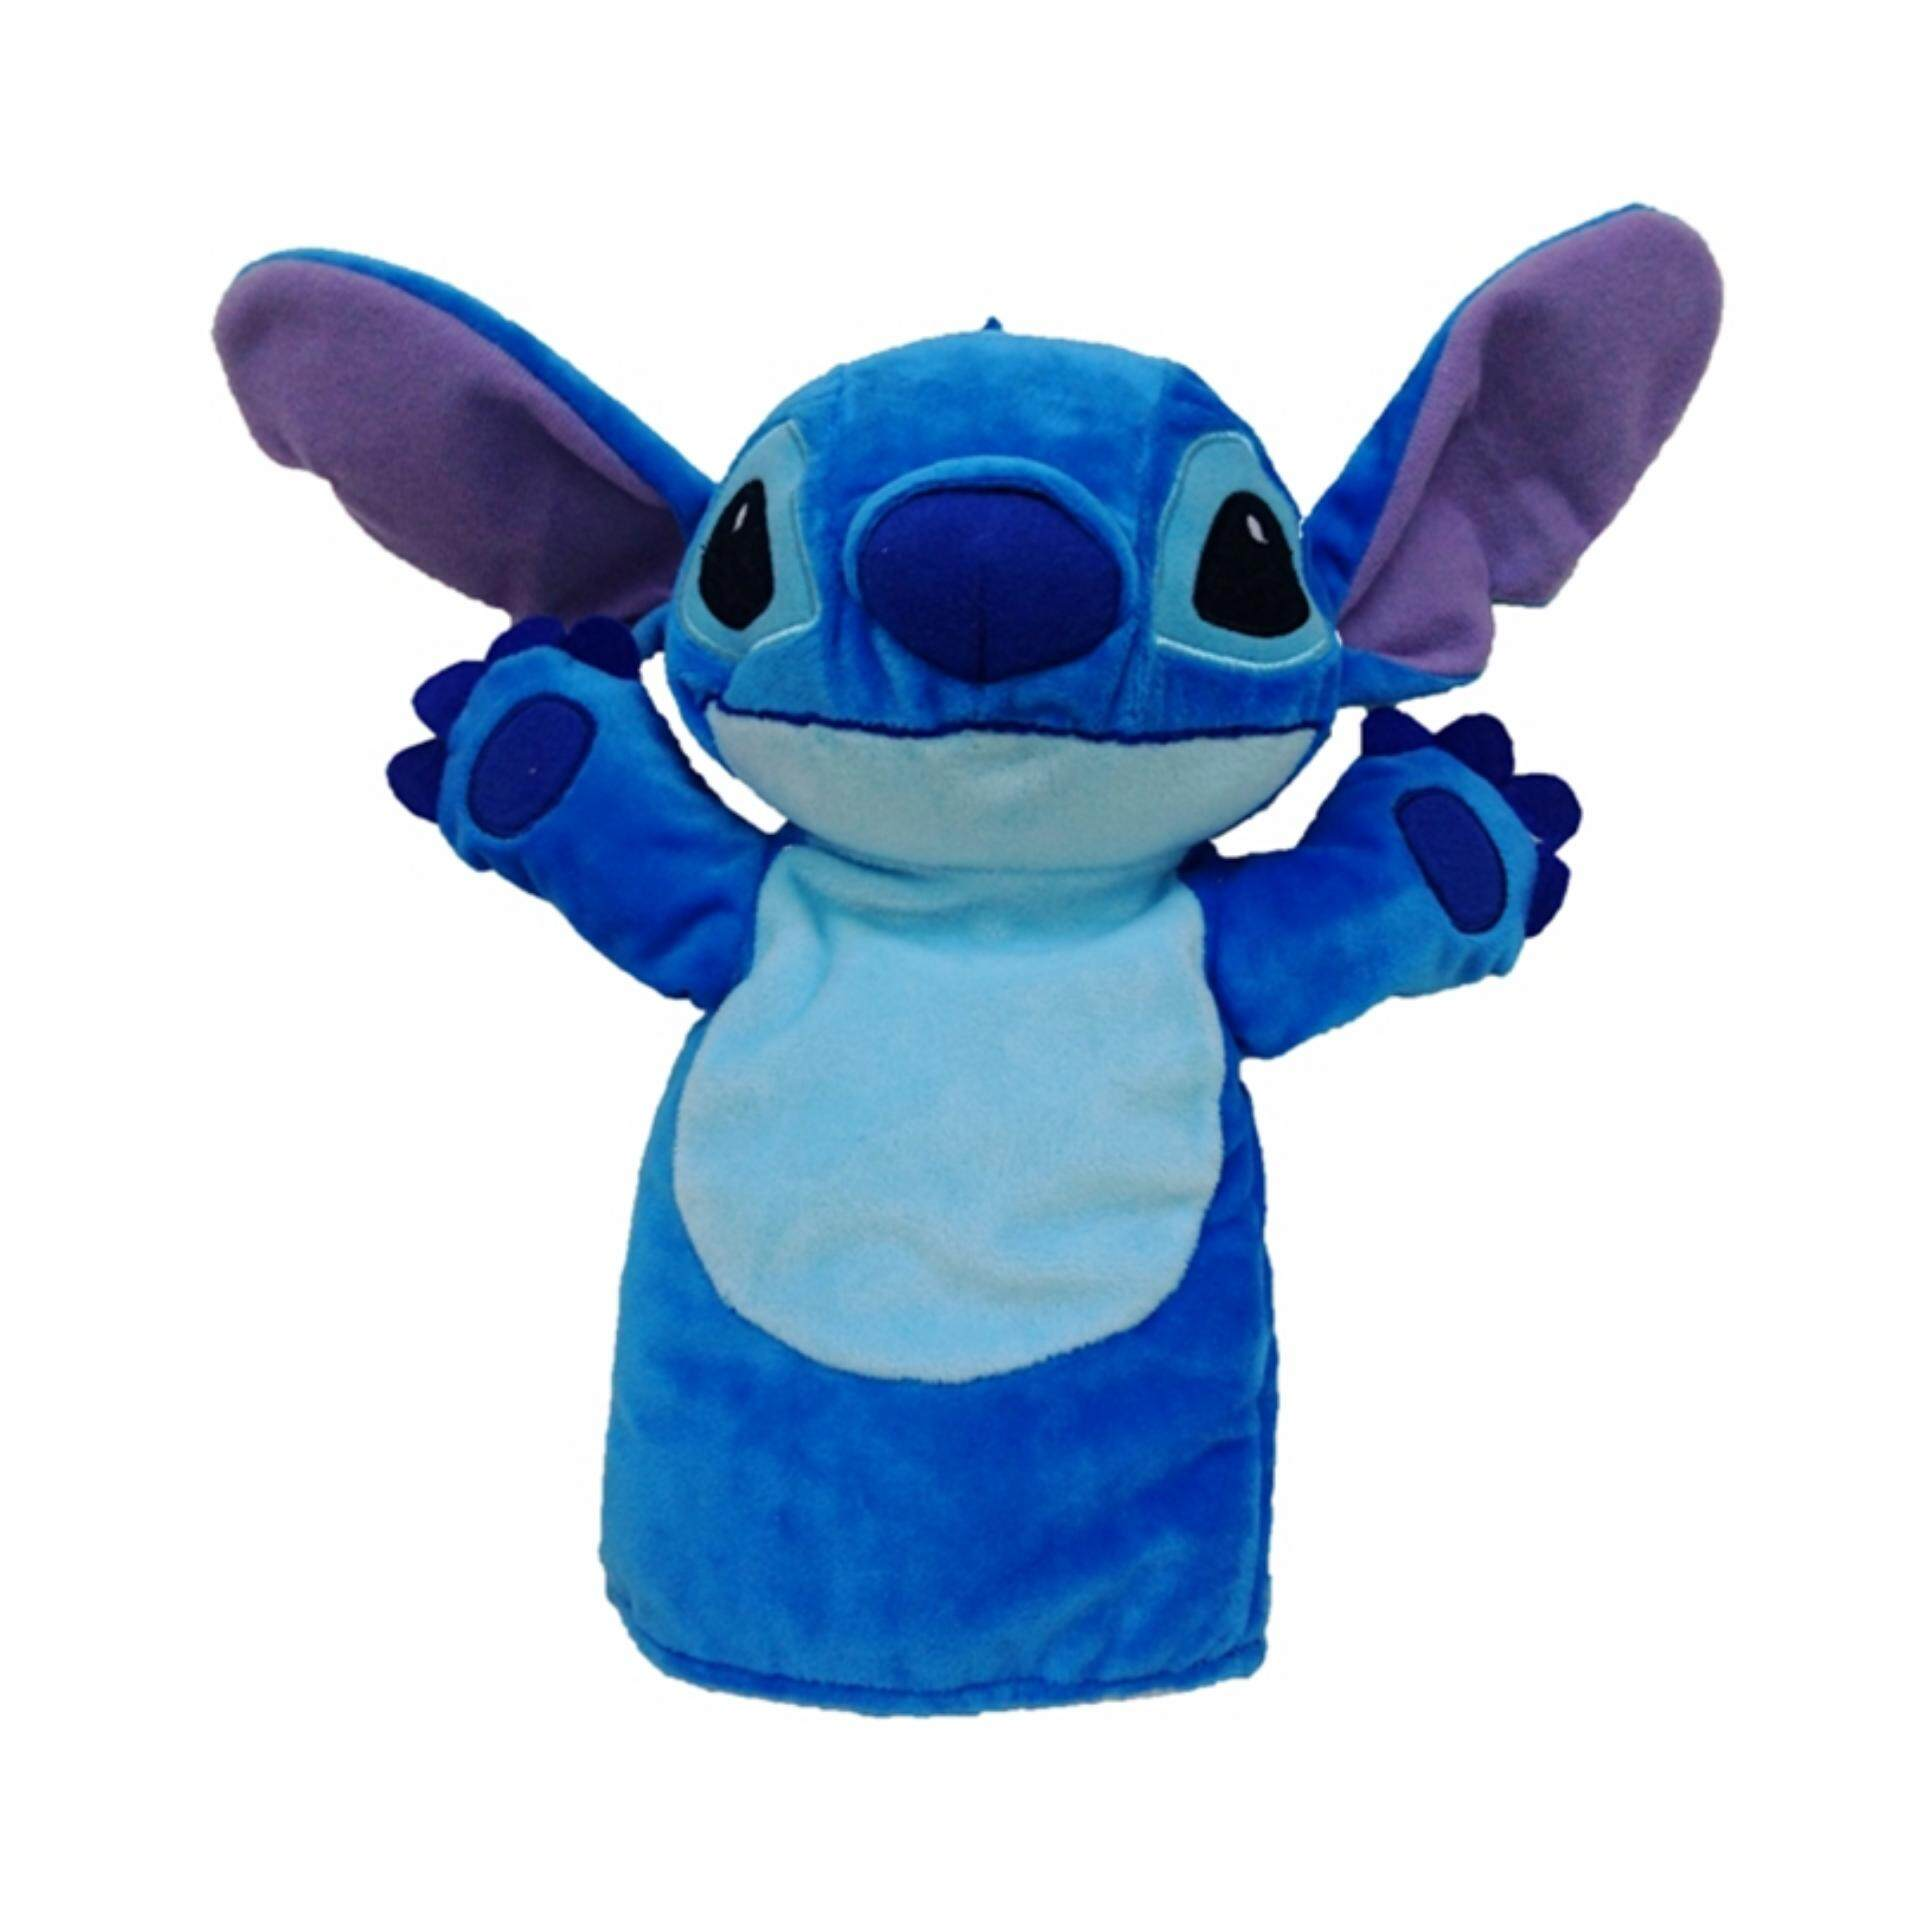 Disney Stitch Hand Puppet Toy - Blue Colour baby toys